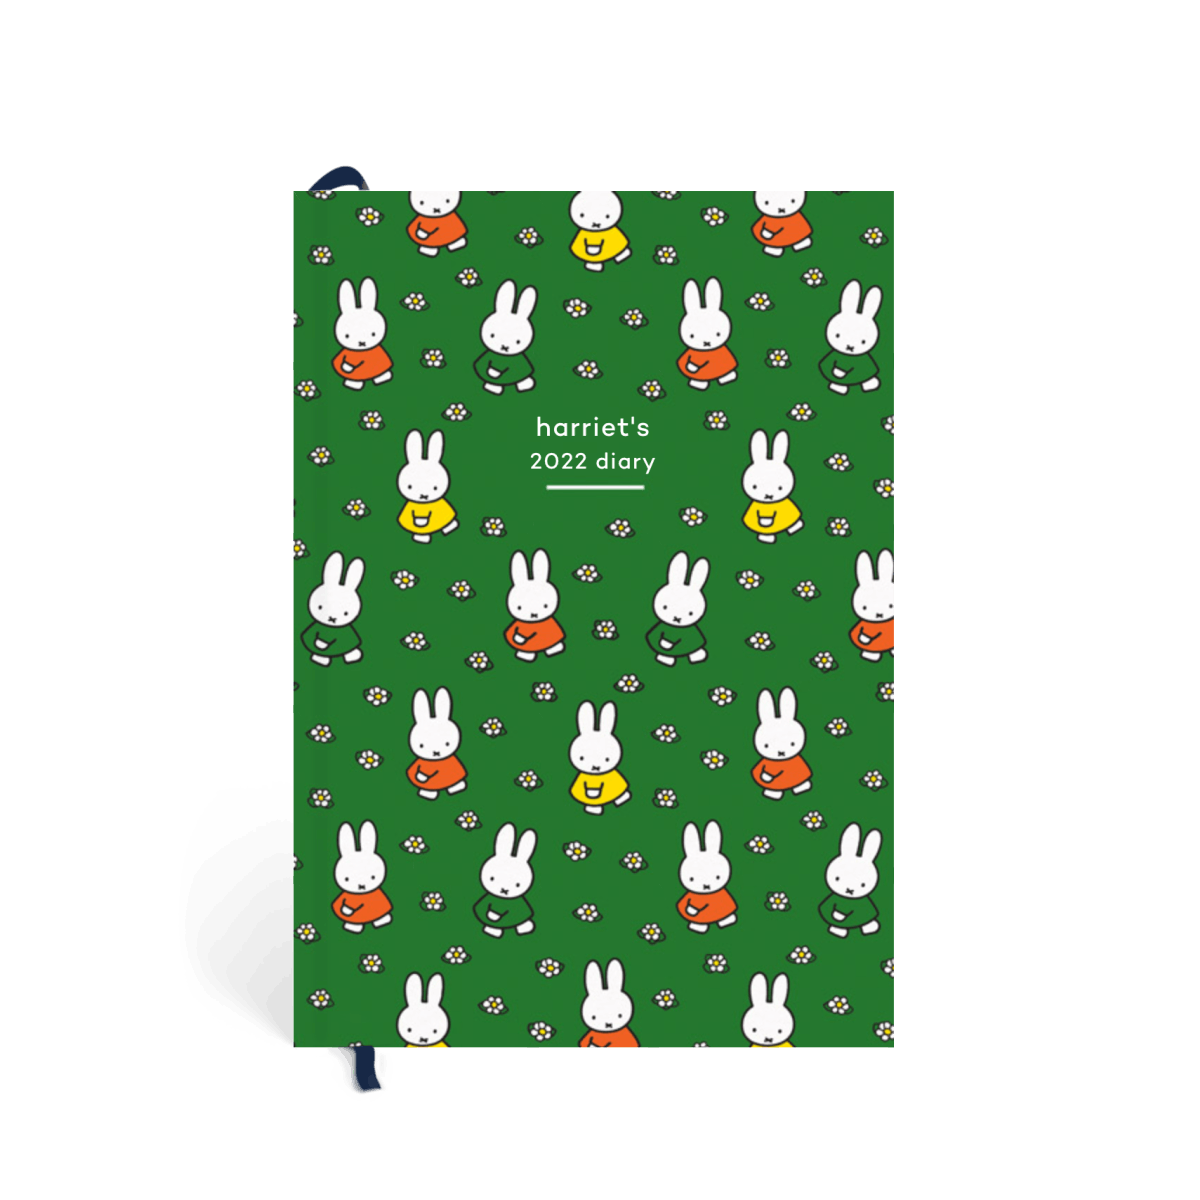 Https%3a%2f%2fwww.papier.com%2fproduct image%2f95634%2f36%2fdaisy miffy 23982 front 1573571309.png?ixlib=rb 1.1